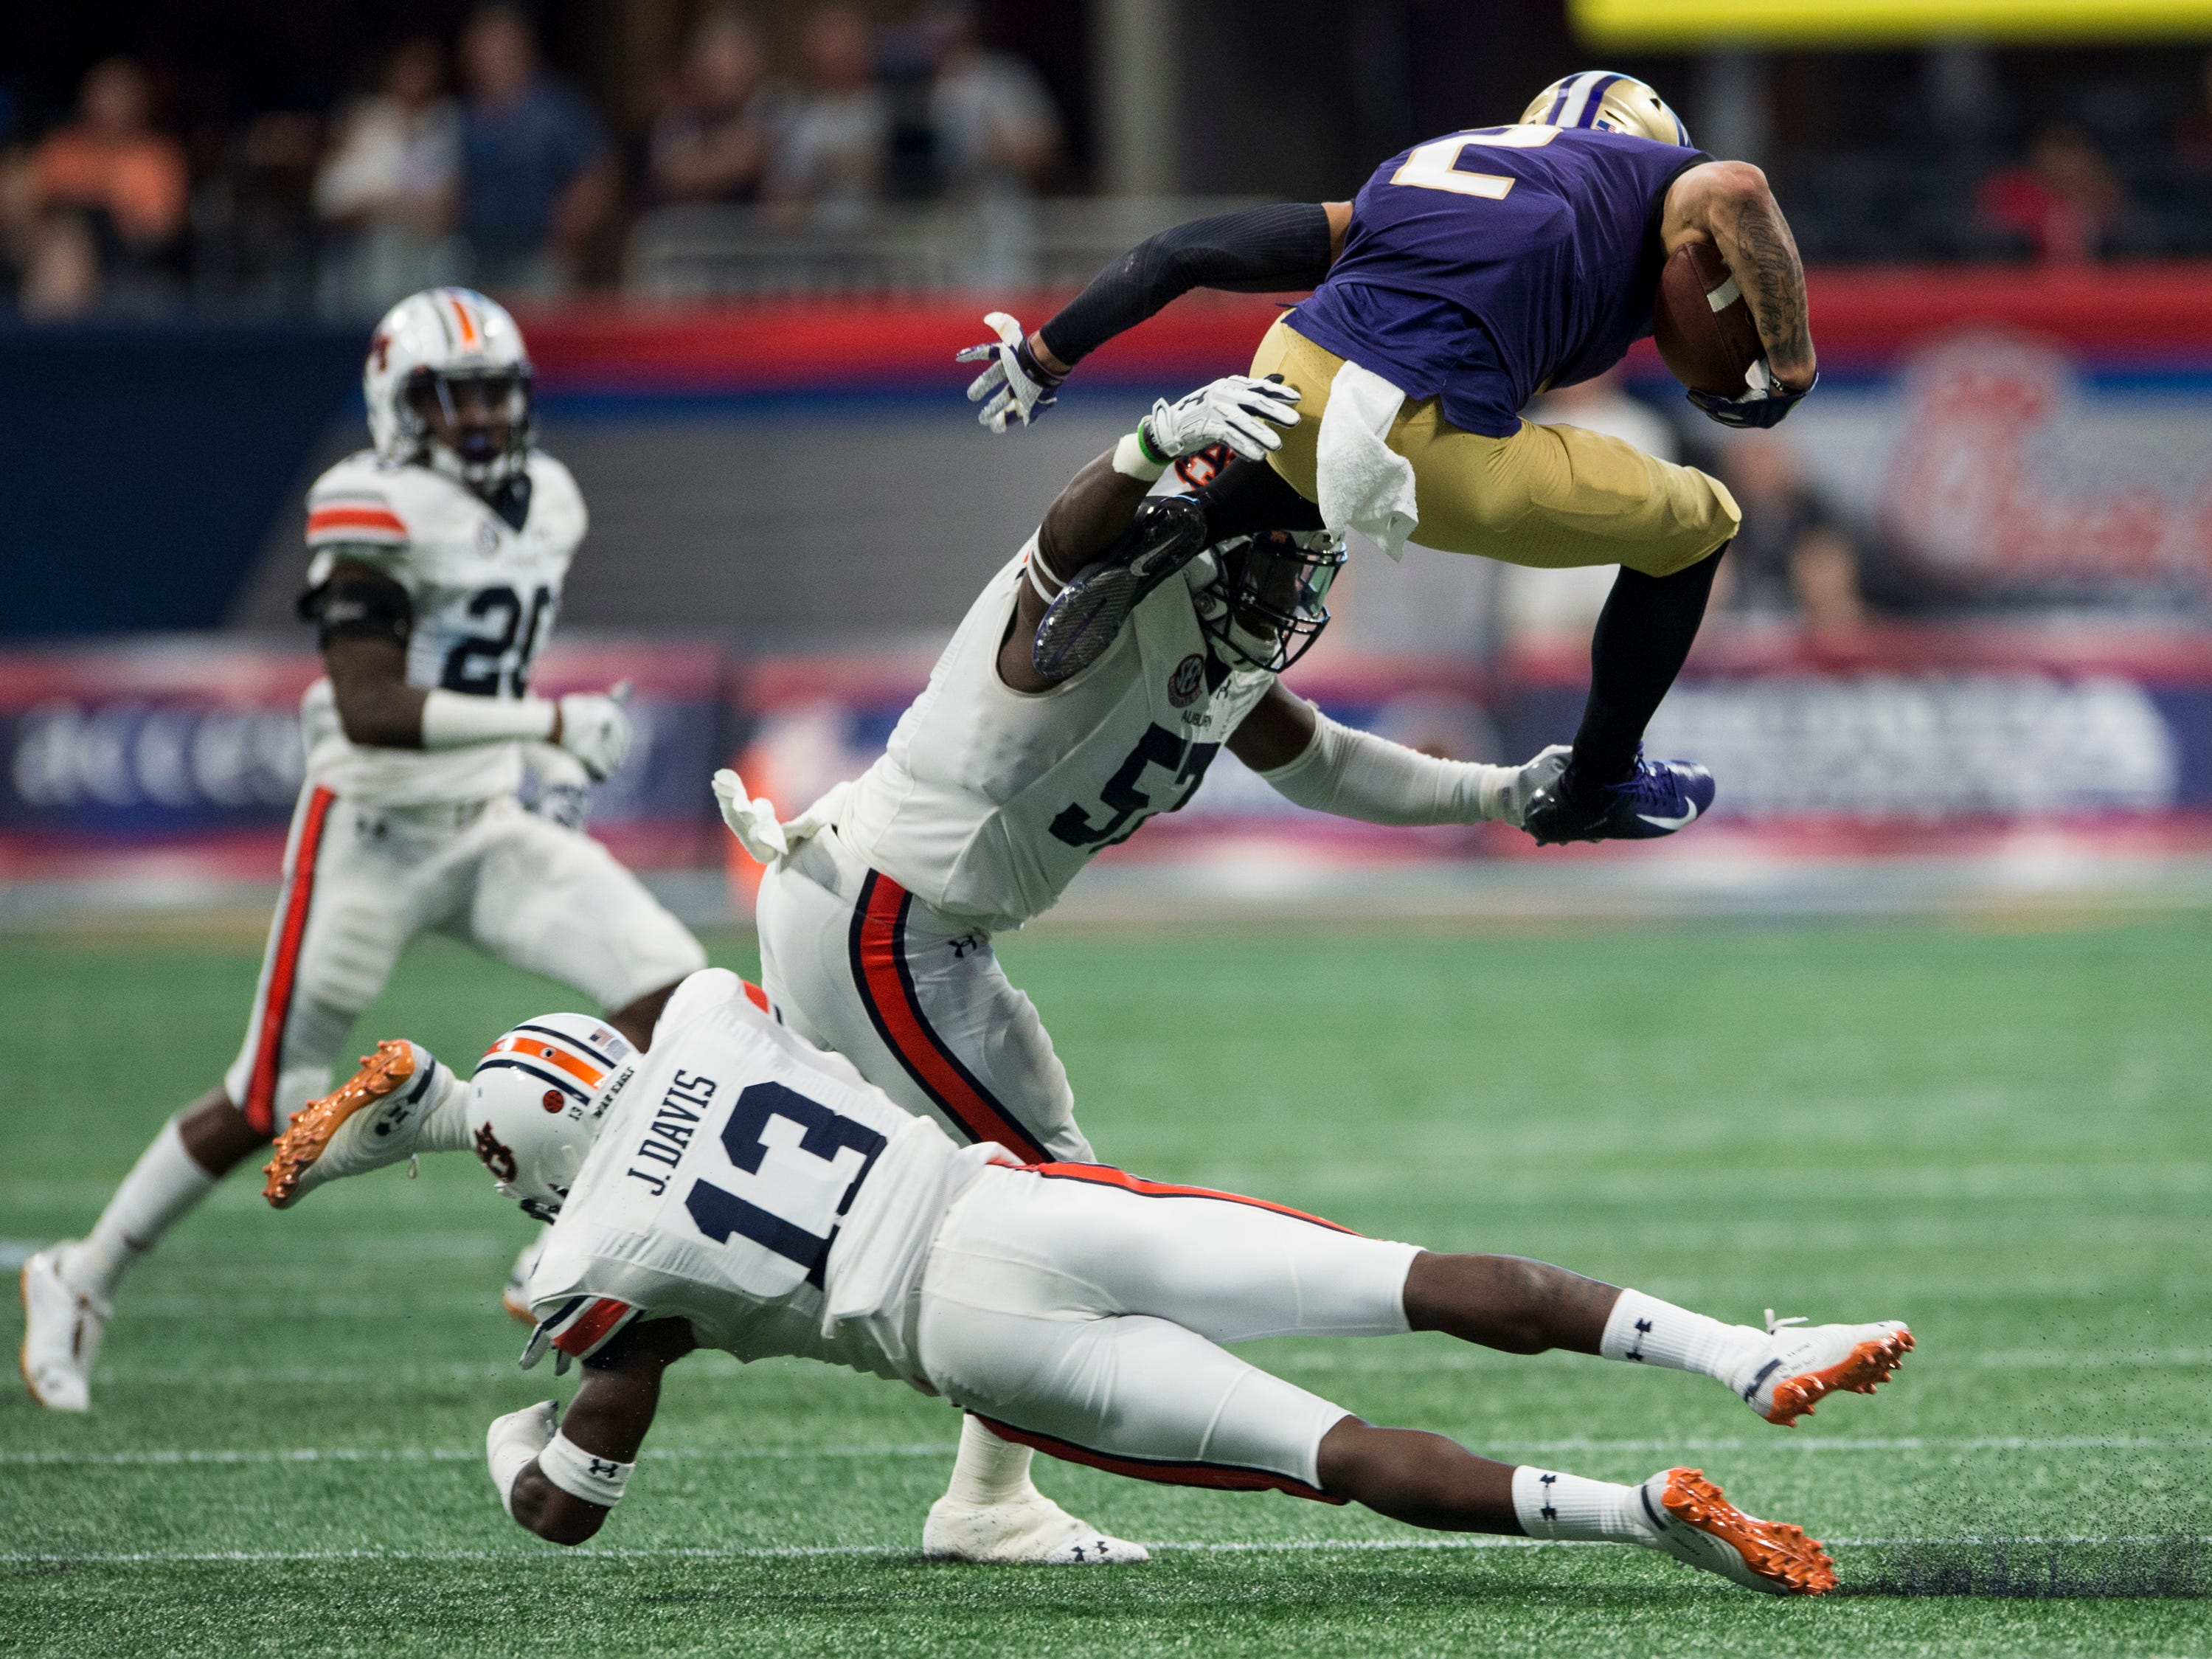 Washington's Aaron Fuller (2) keeps over Auburn's Javaris Davis (13) and is tackled in the air by Auburn's Deshaun Davis (57) at Mercedes-Benz Stadium in Atlanta, Ga., on Saturday, Sept. 1, 2018. Auburn leads Washington 15-13 at halftime.